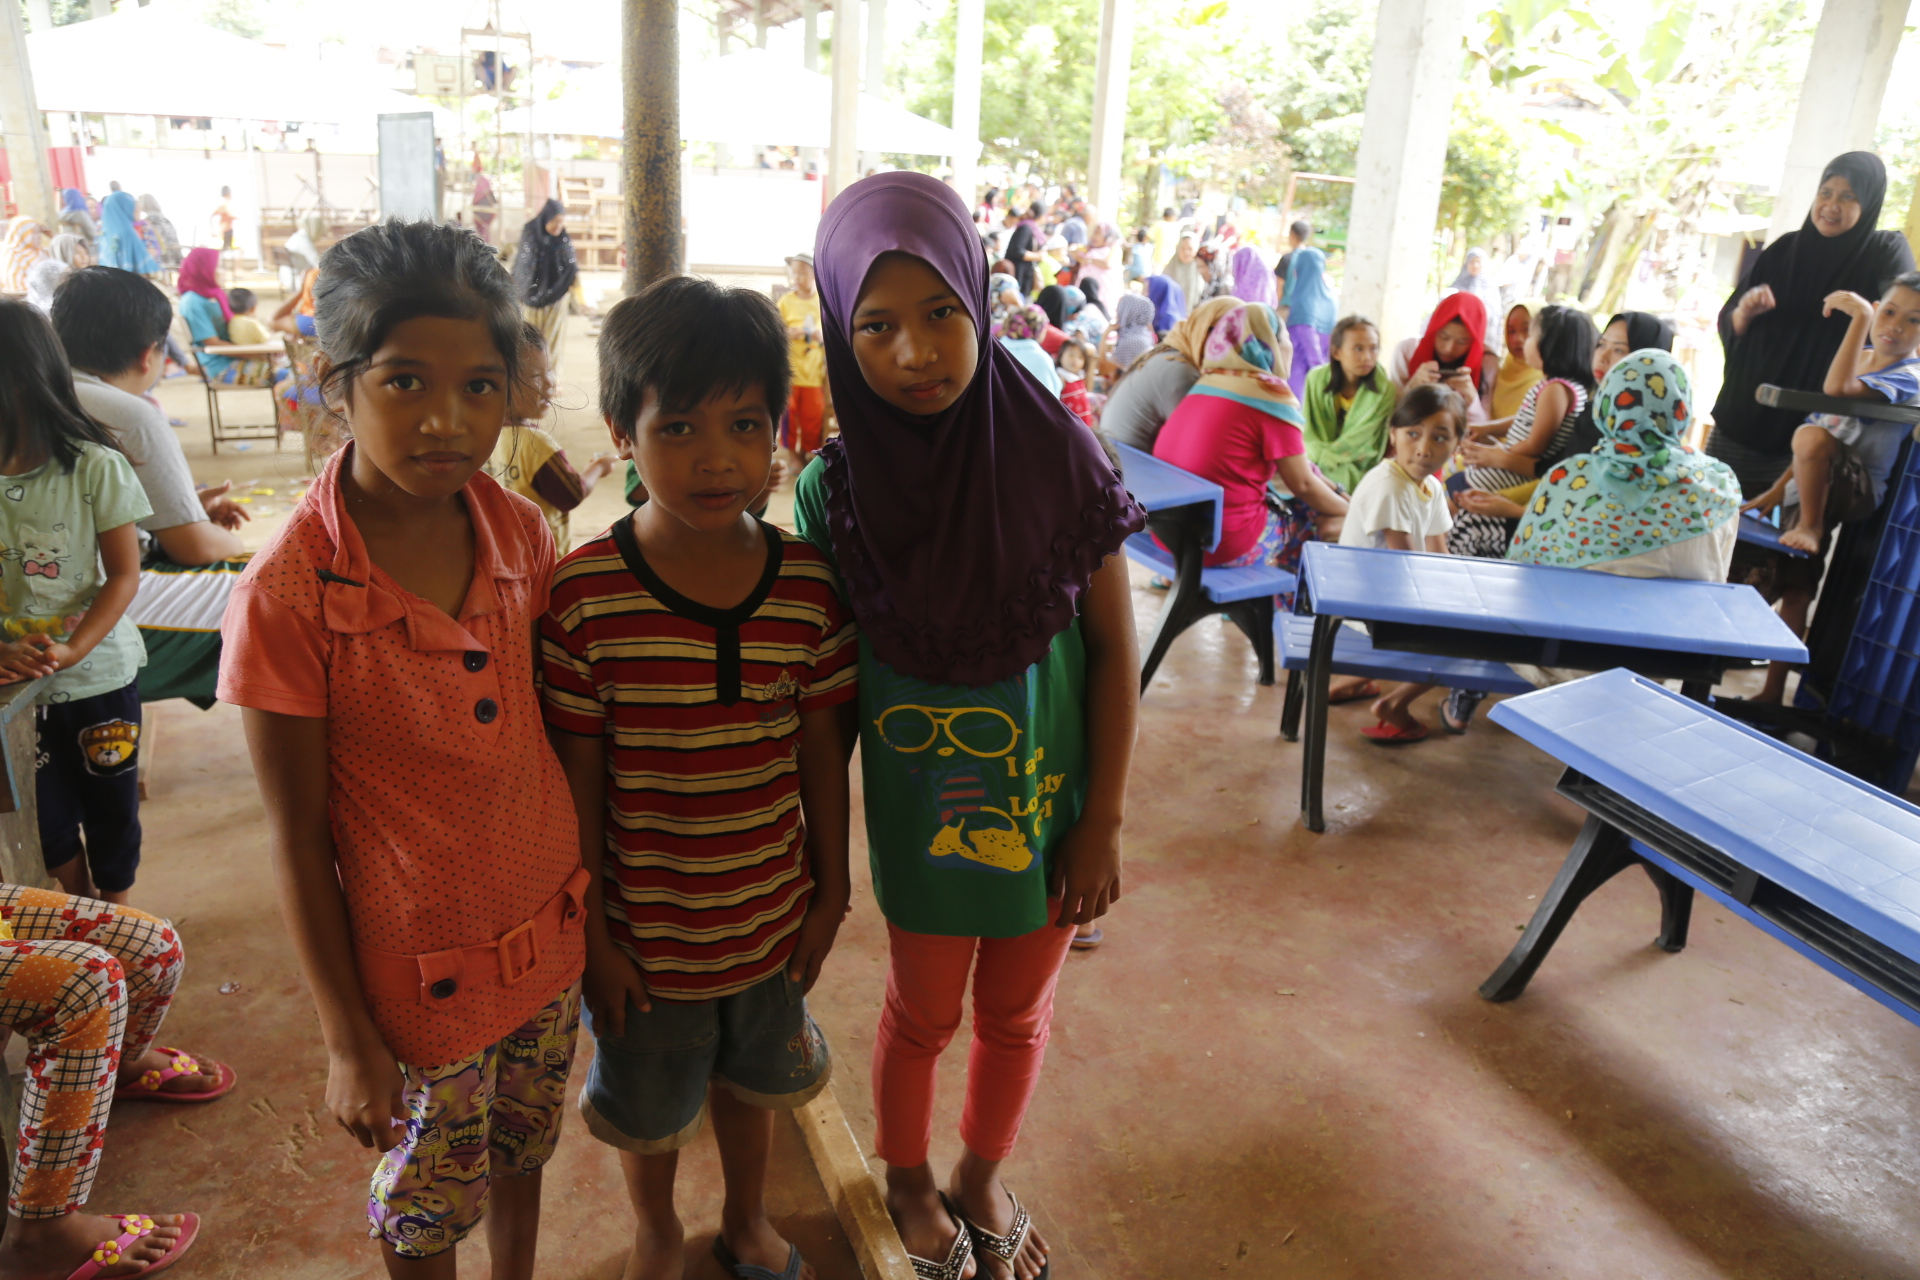 The Marawi crisis in the eyes of a child